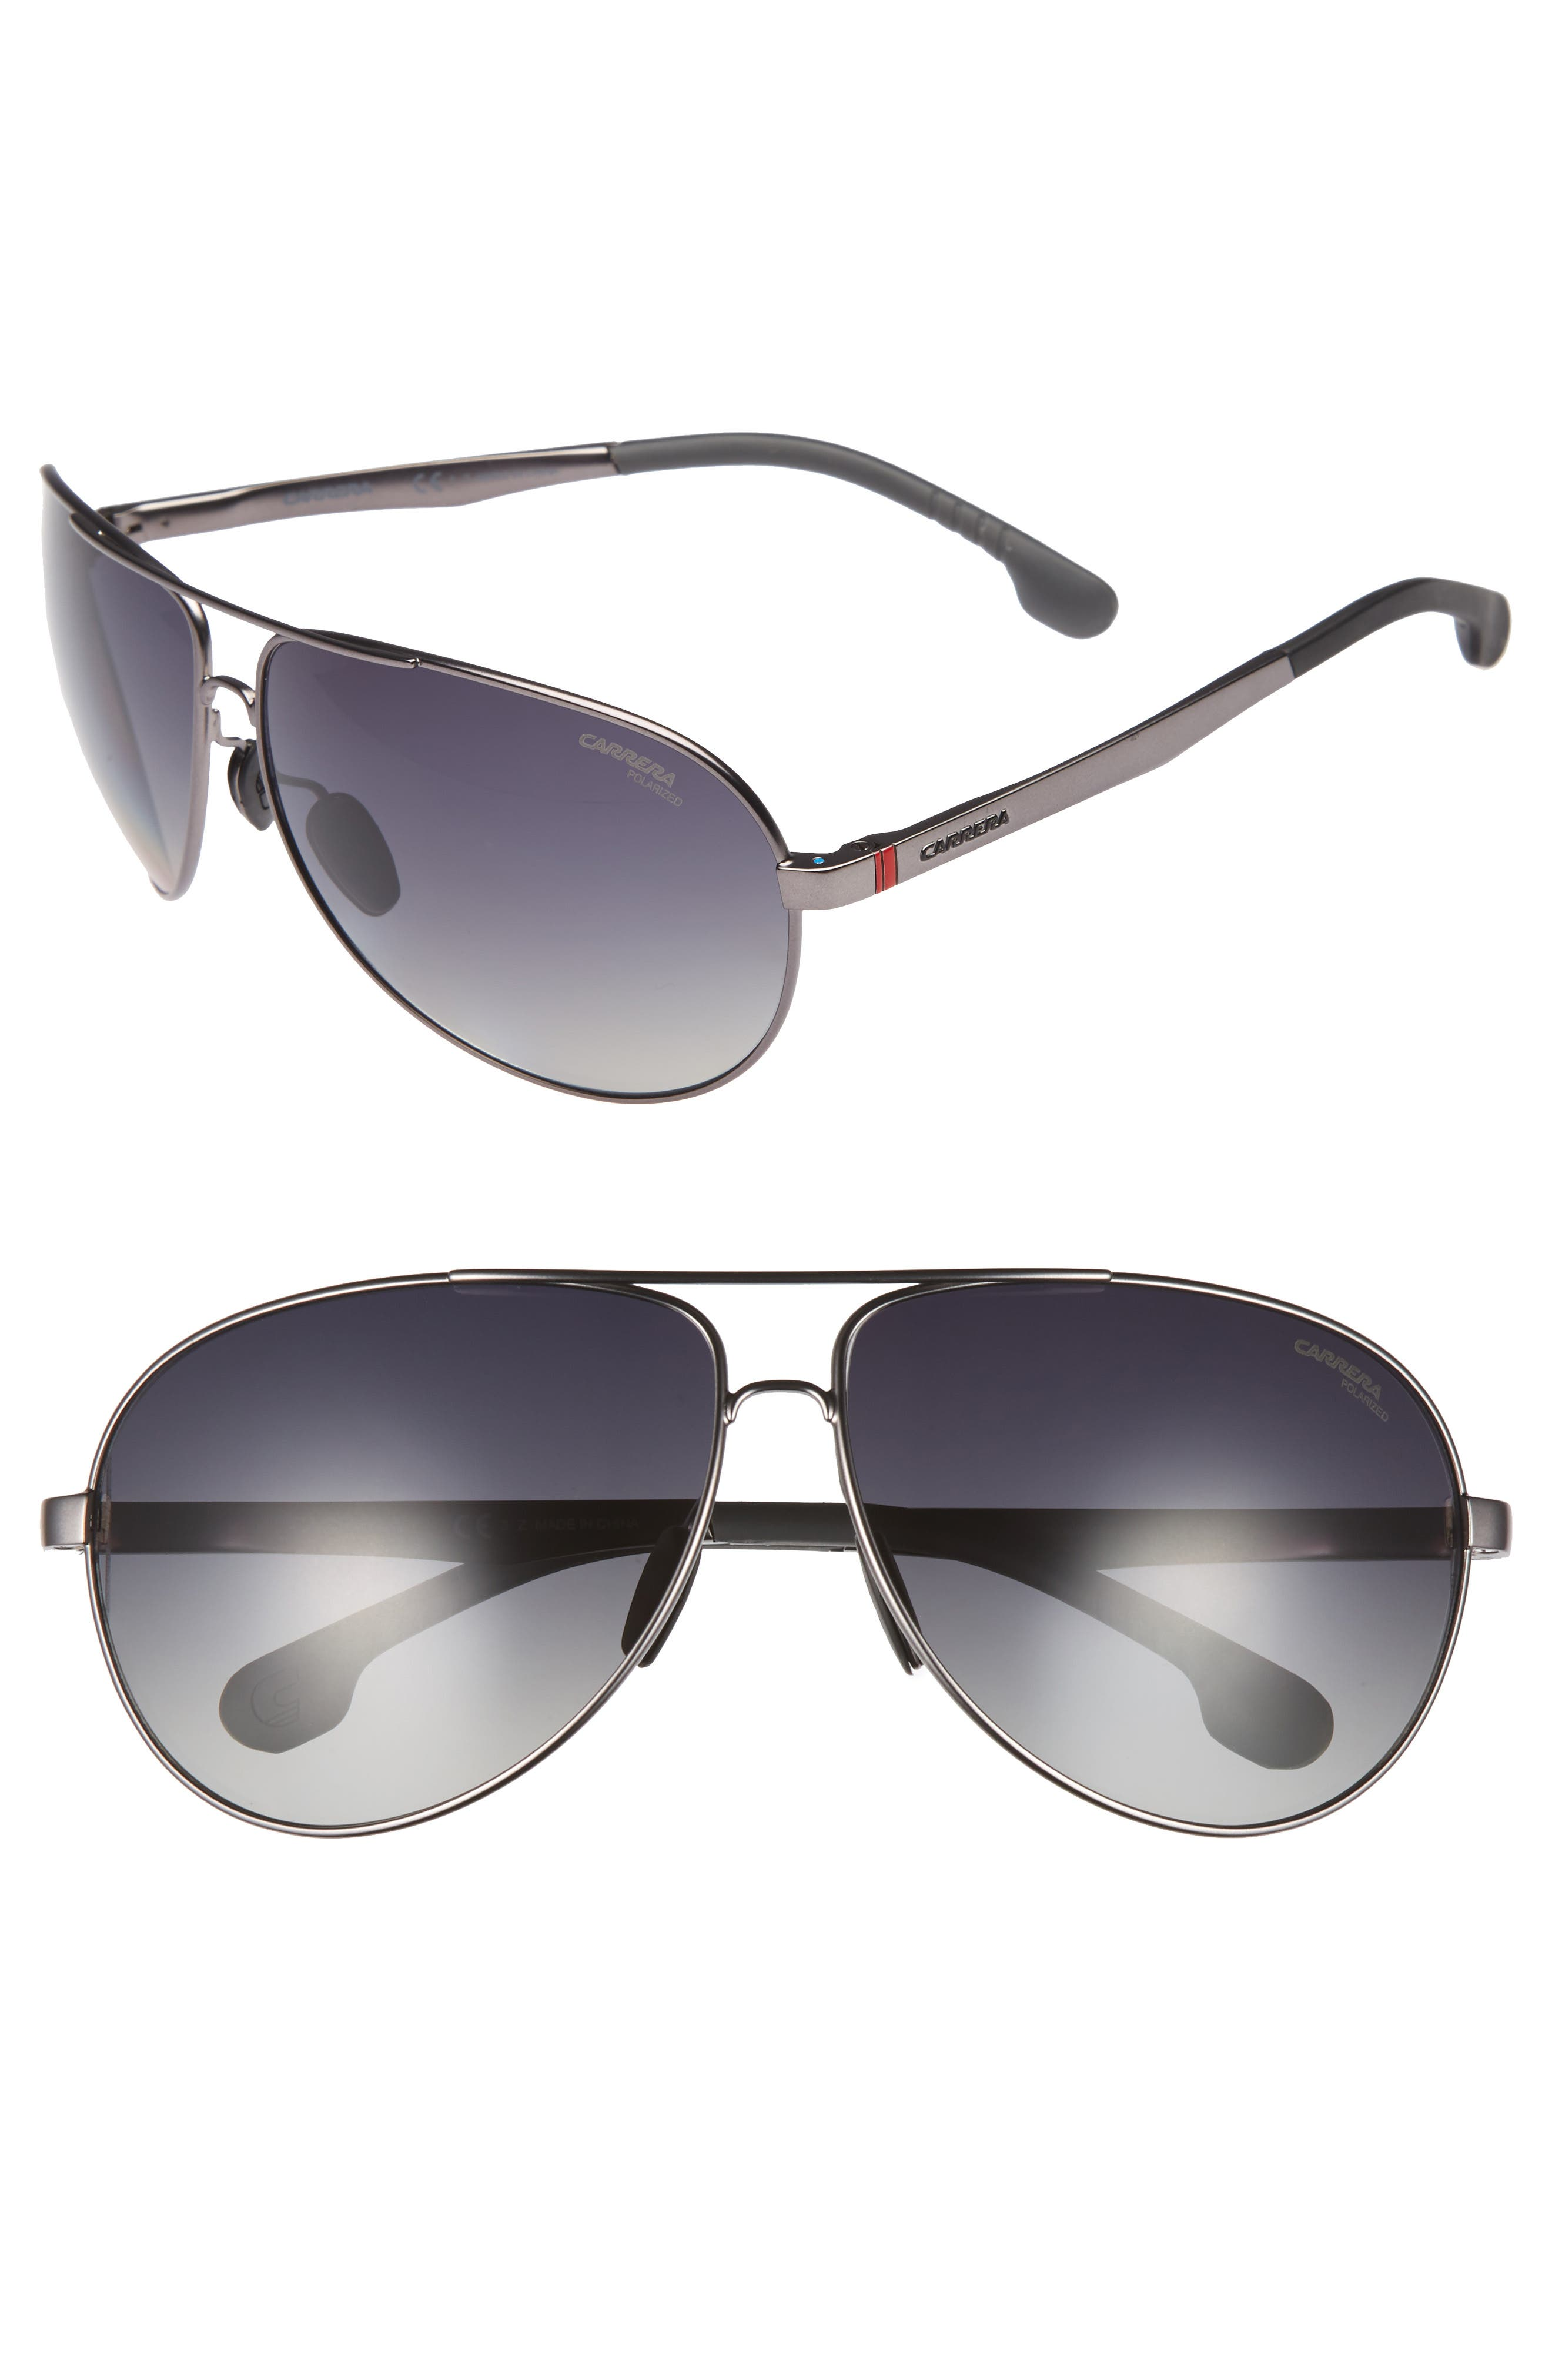 Carrera Eyewear 6m Polarized Sunglasses -